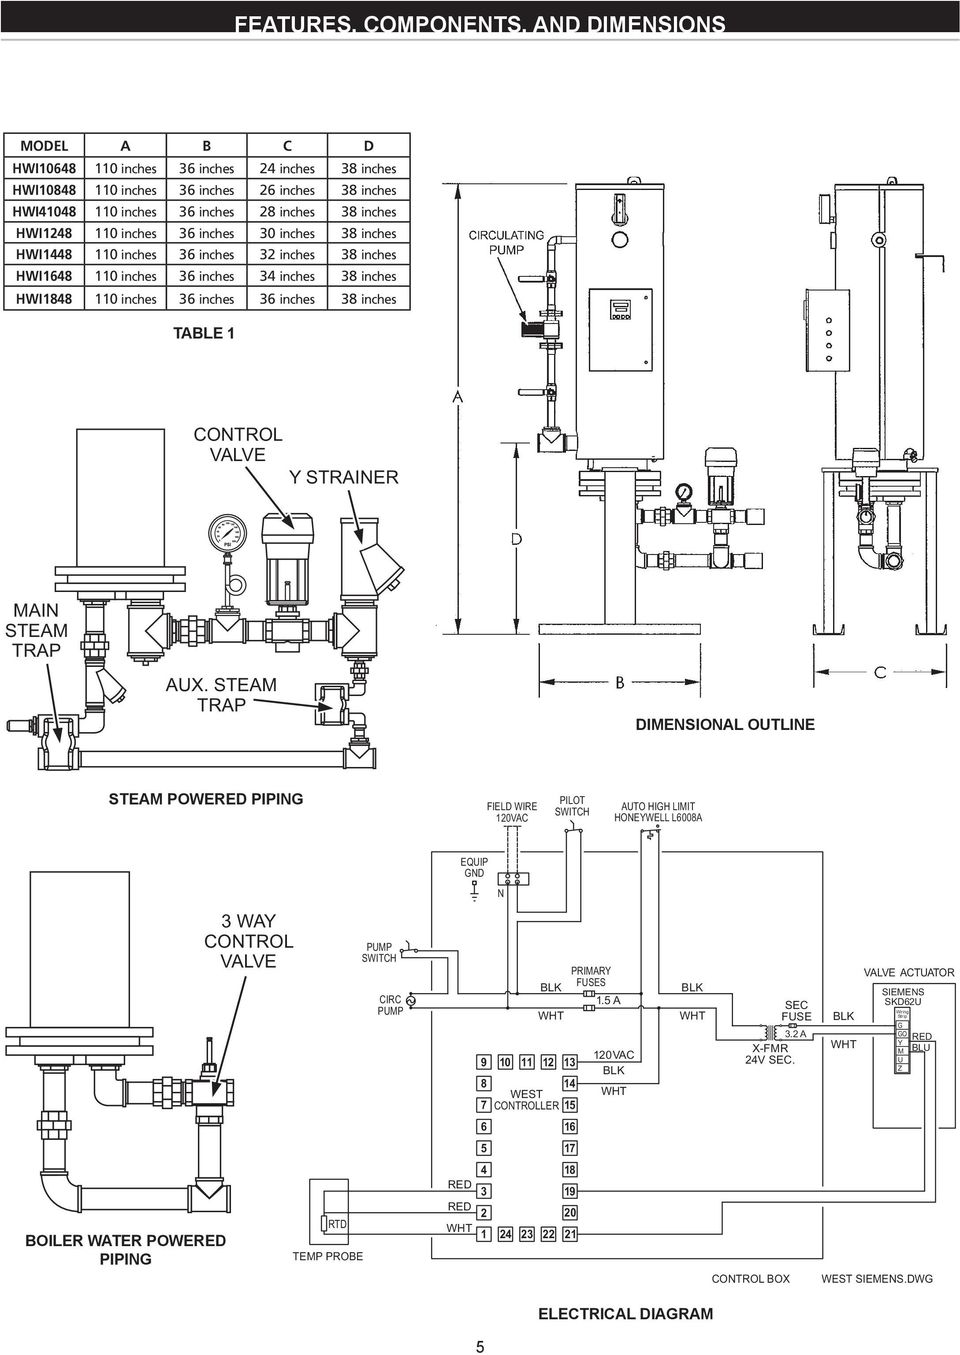 medium resolution of dwg z electrical diagram 5 inches table 1 control valve y strainer main steam trap aux